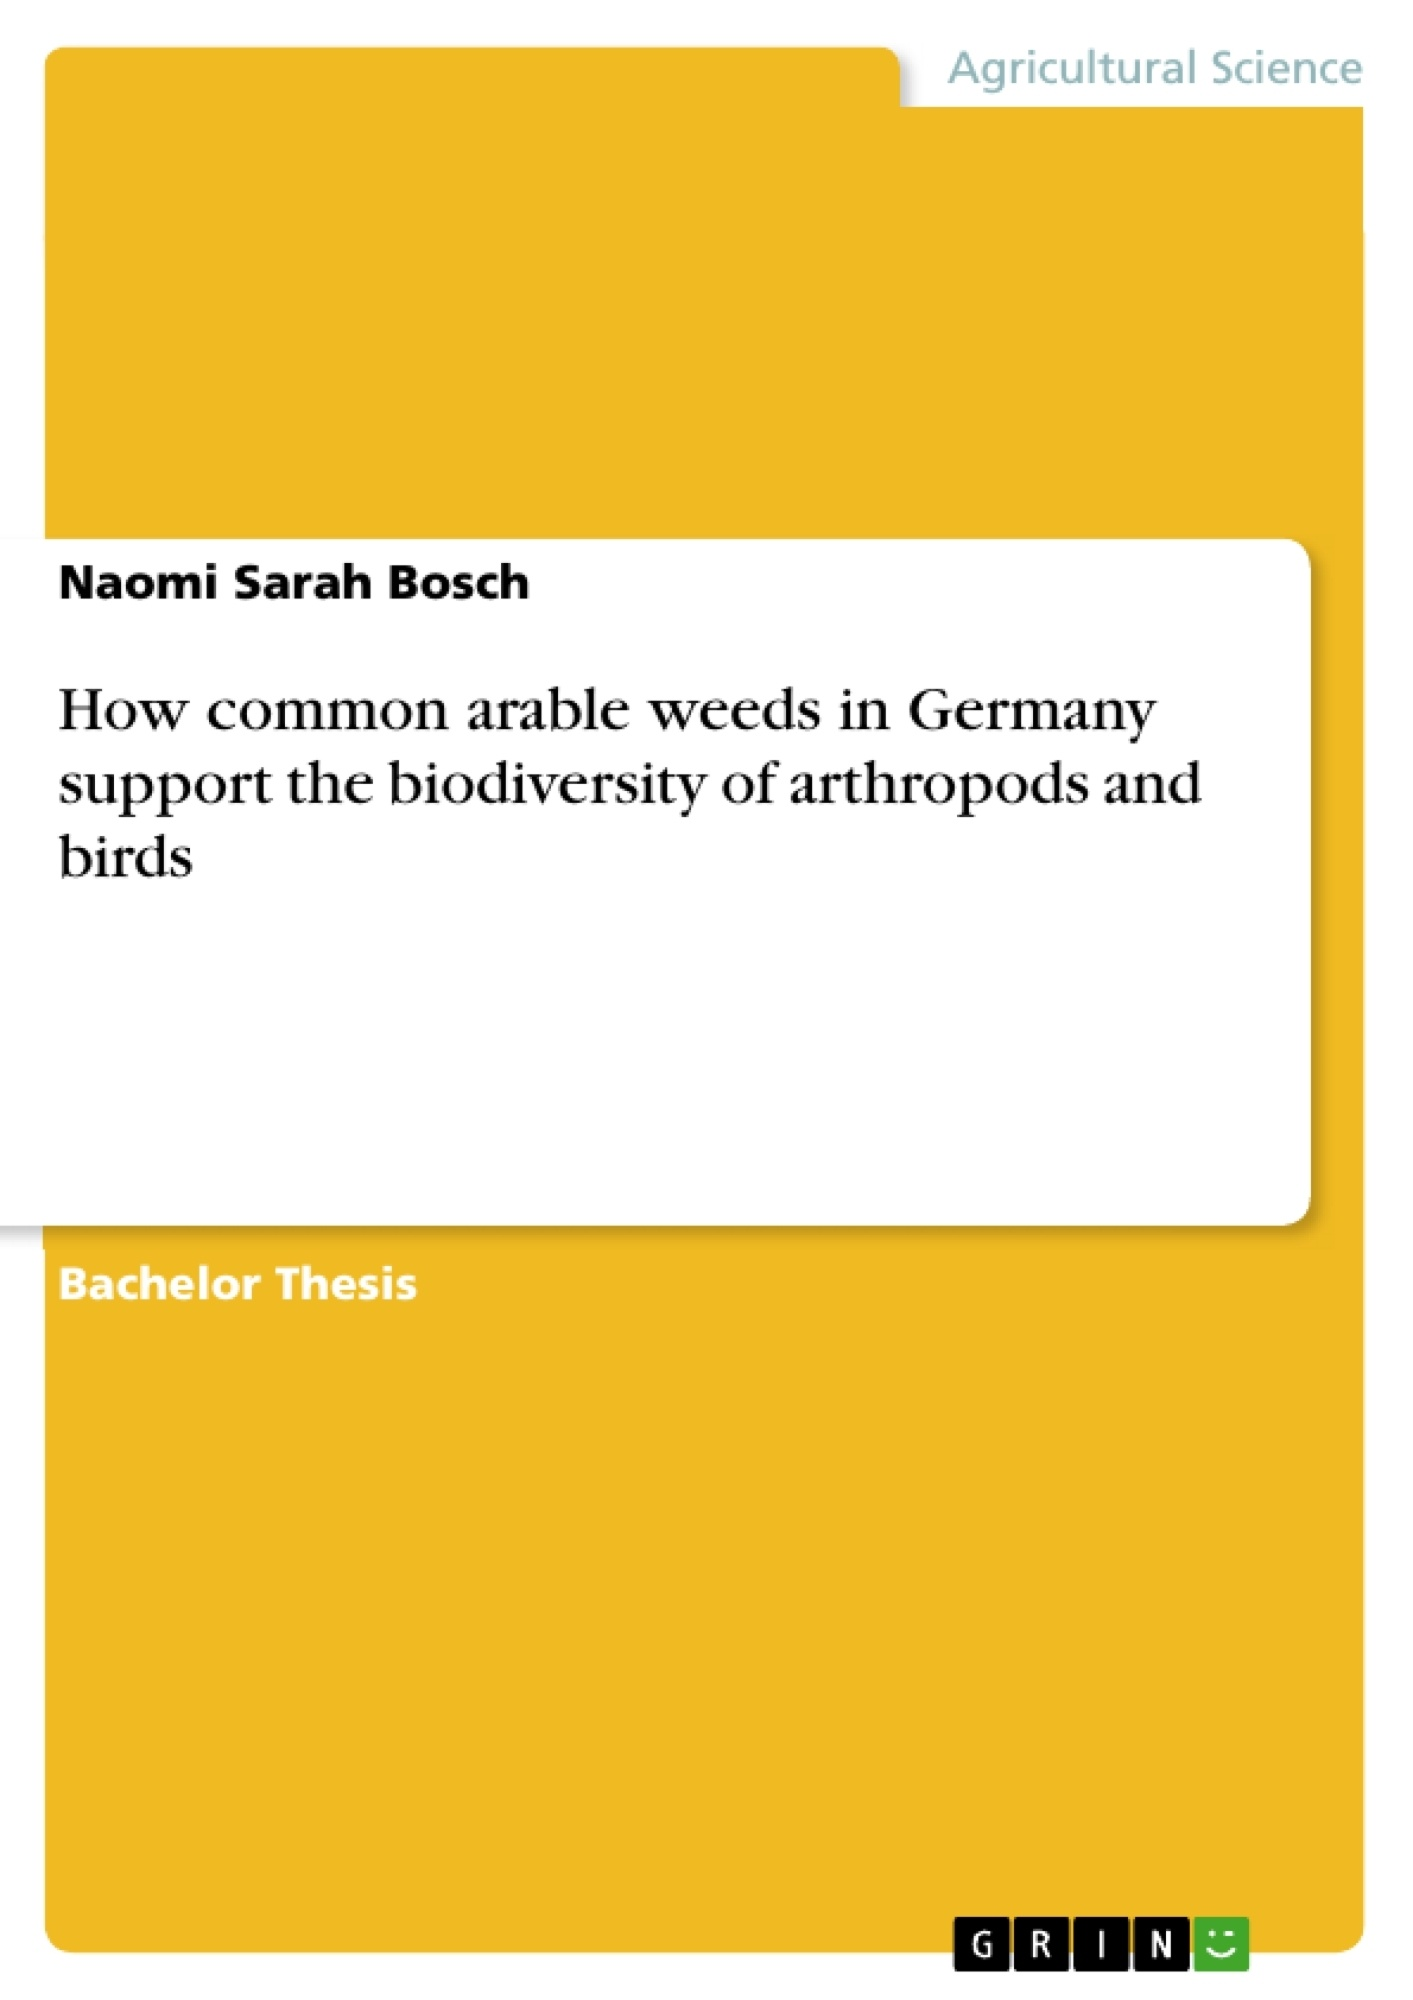 Title: How common arable weeds in Germany support the biodiversity of arthropods and birds